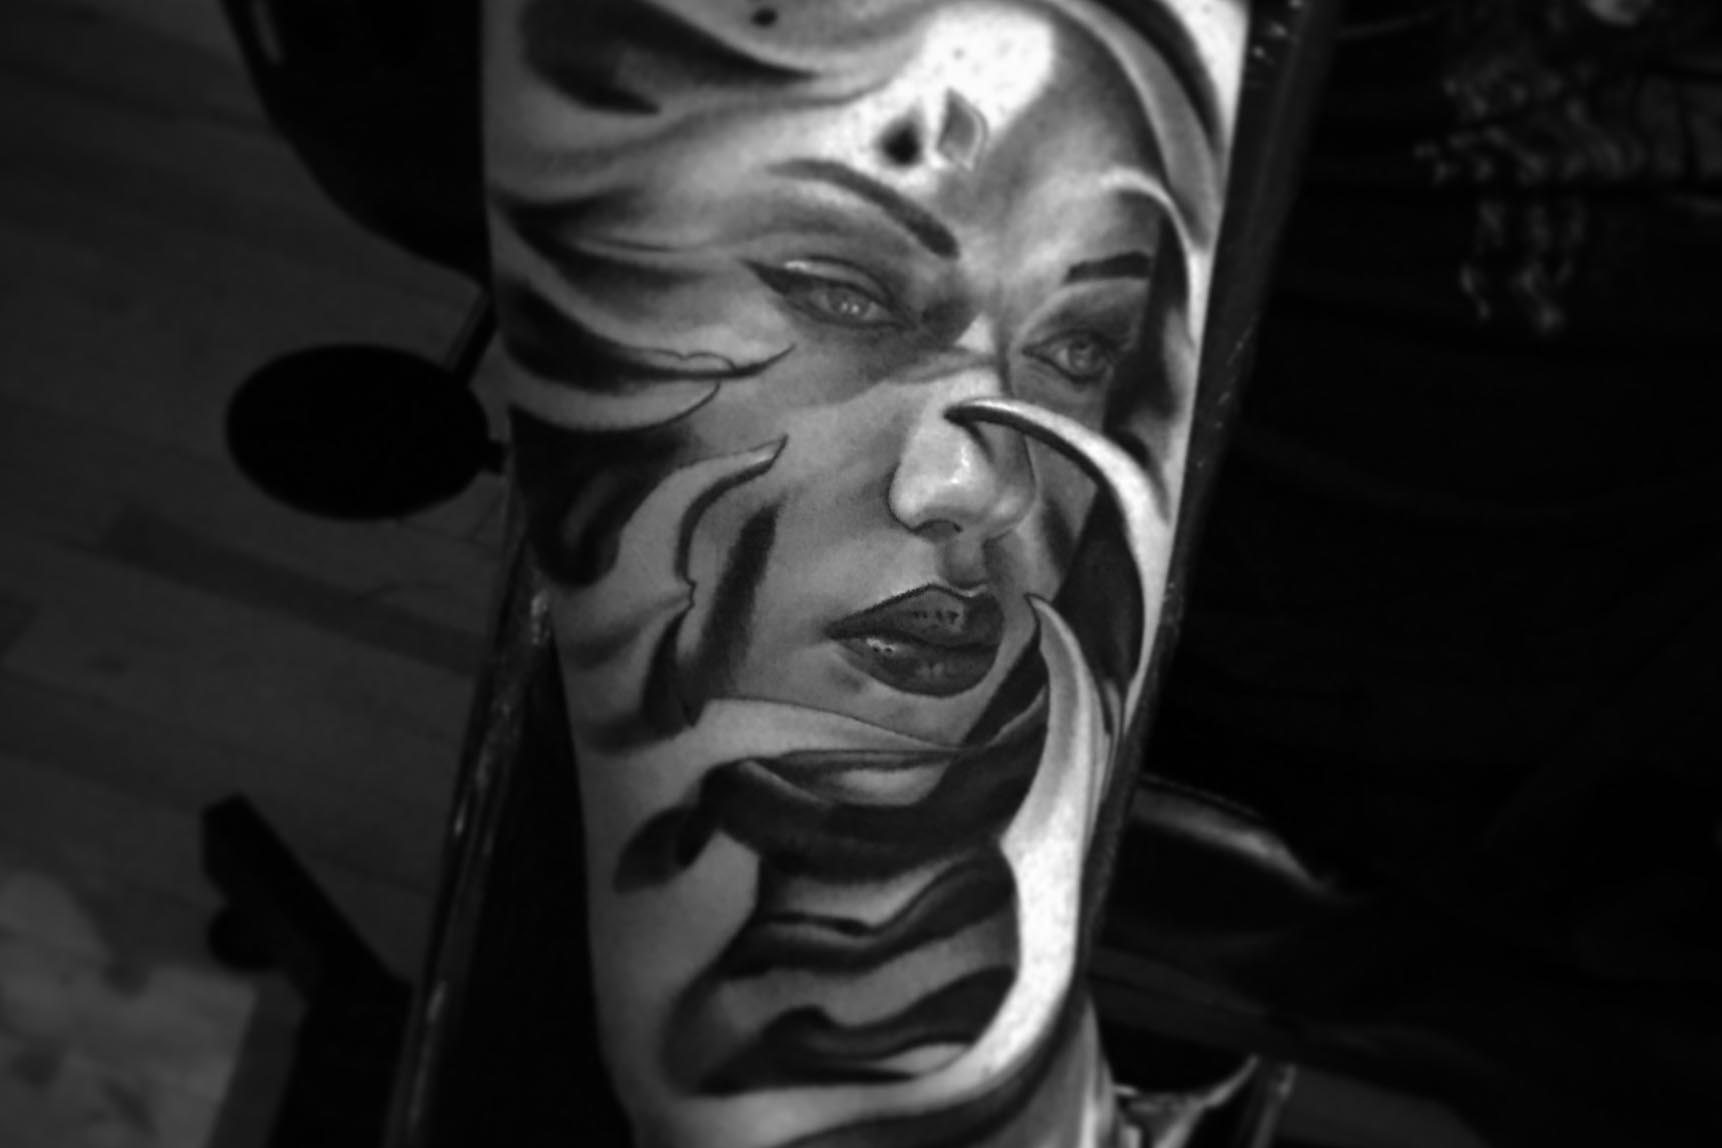 Oly Anger Tattoo Blainville, Tattoo by Oly Anger 1